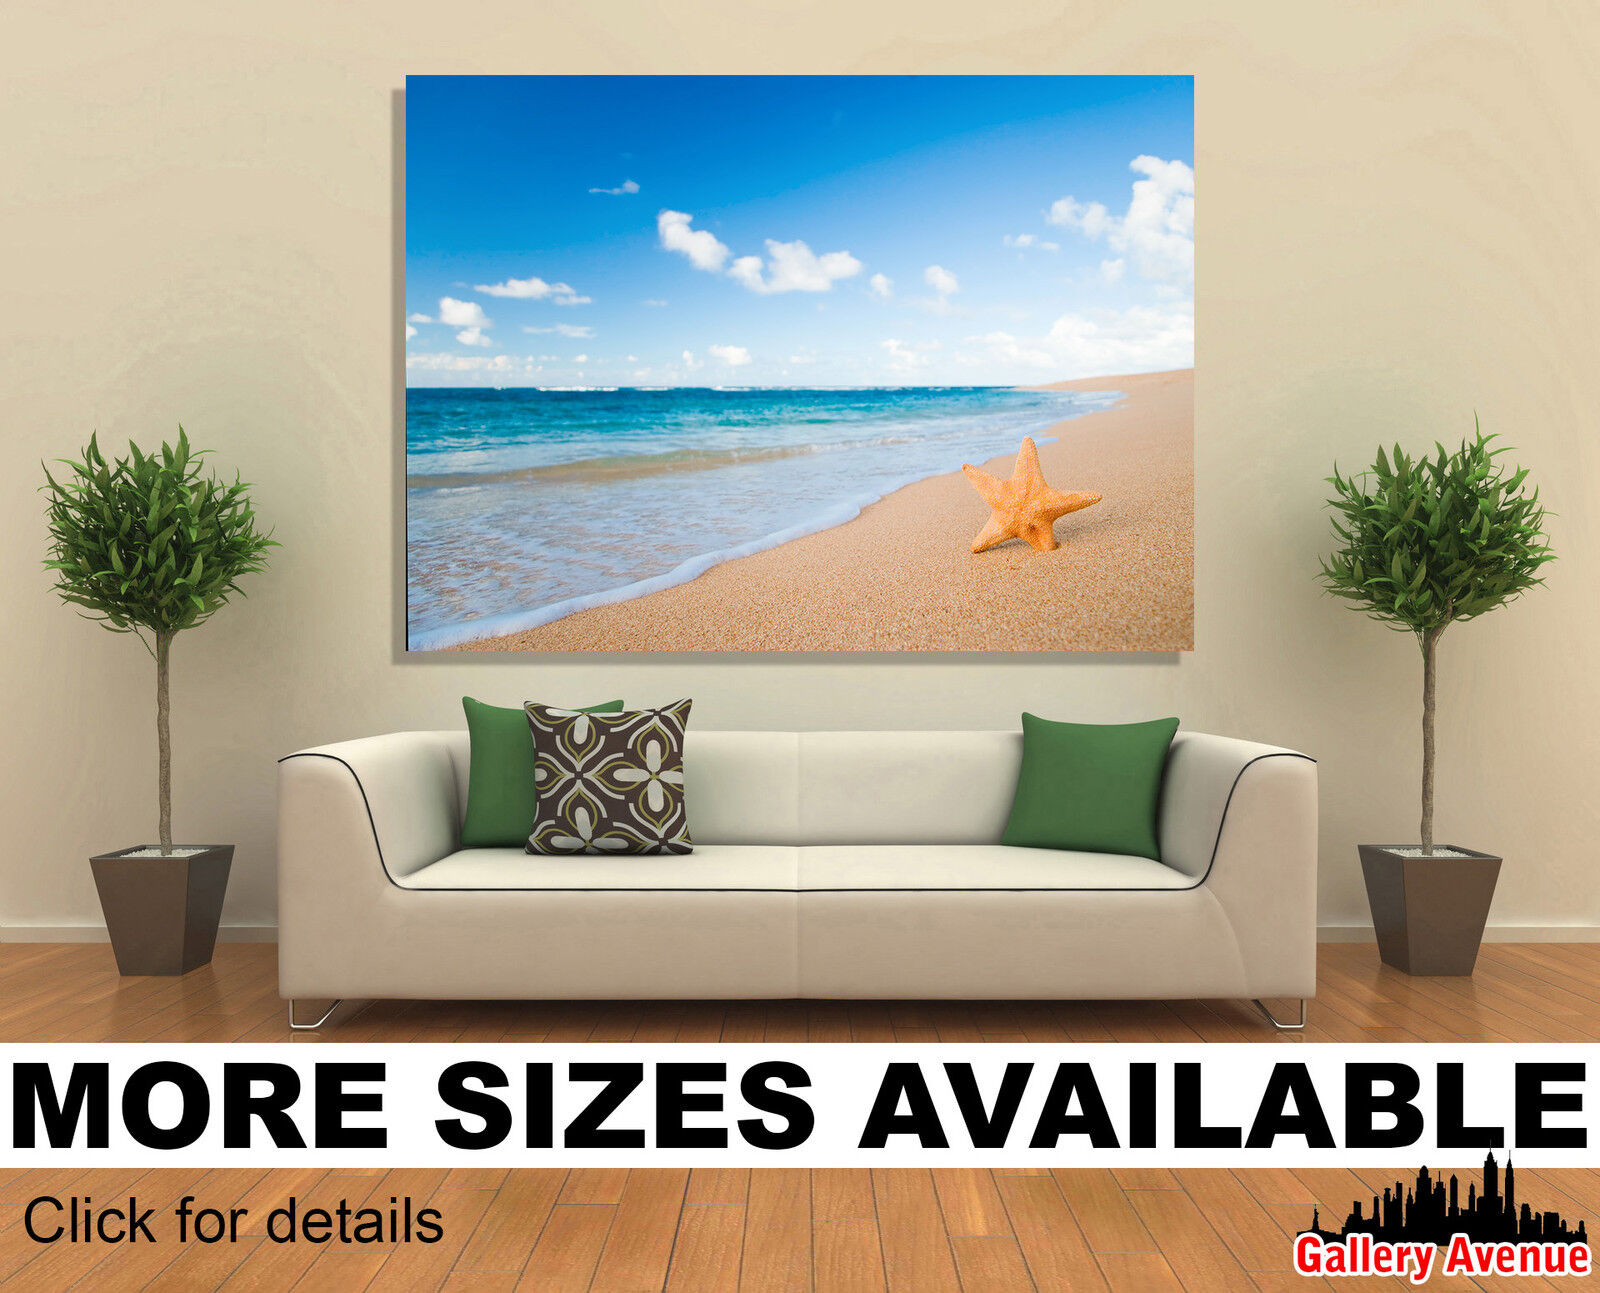 Wand Kunst Canvas Bild Drucken - Starfish, Beach, Ocean, Seascape -3.2